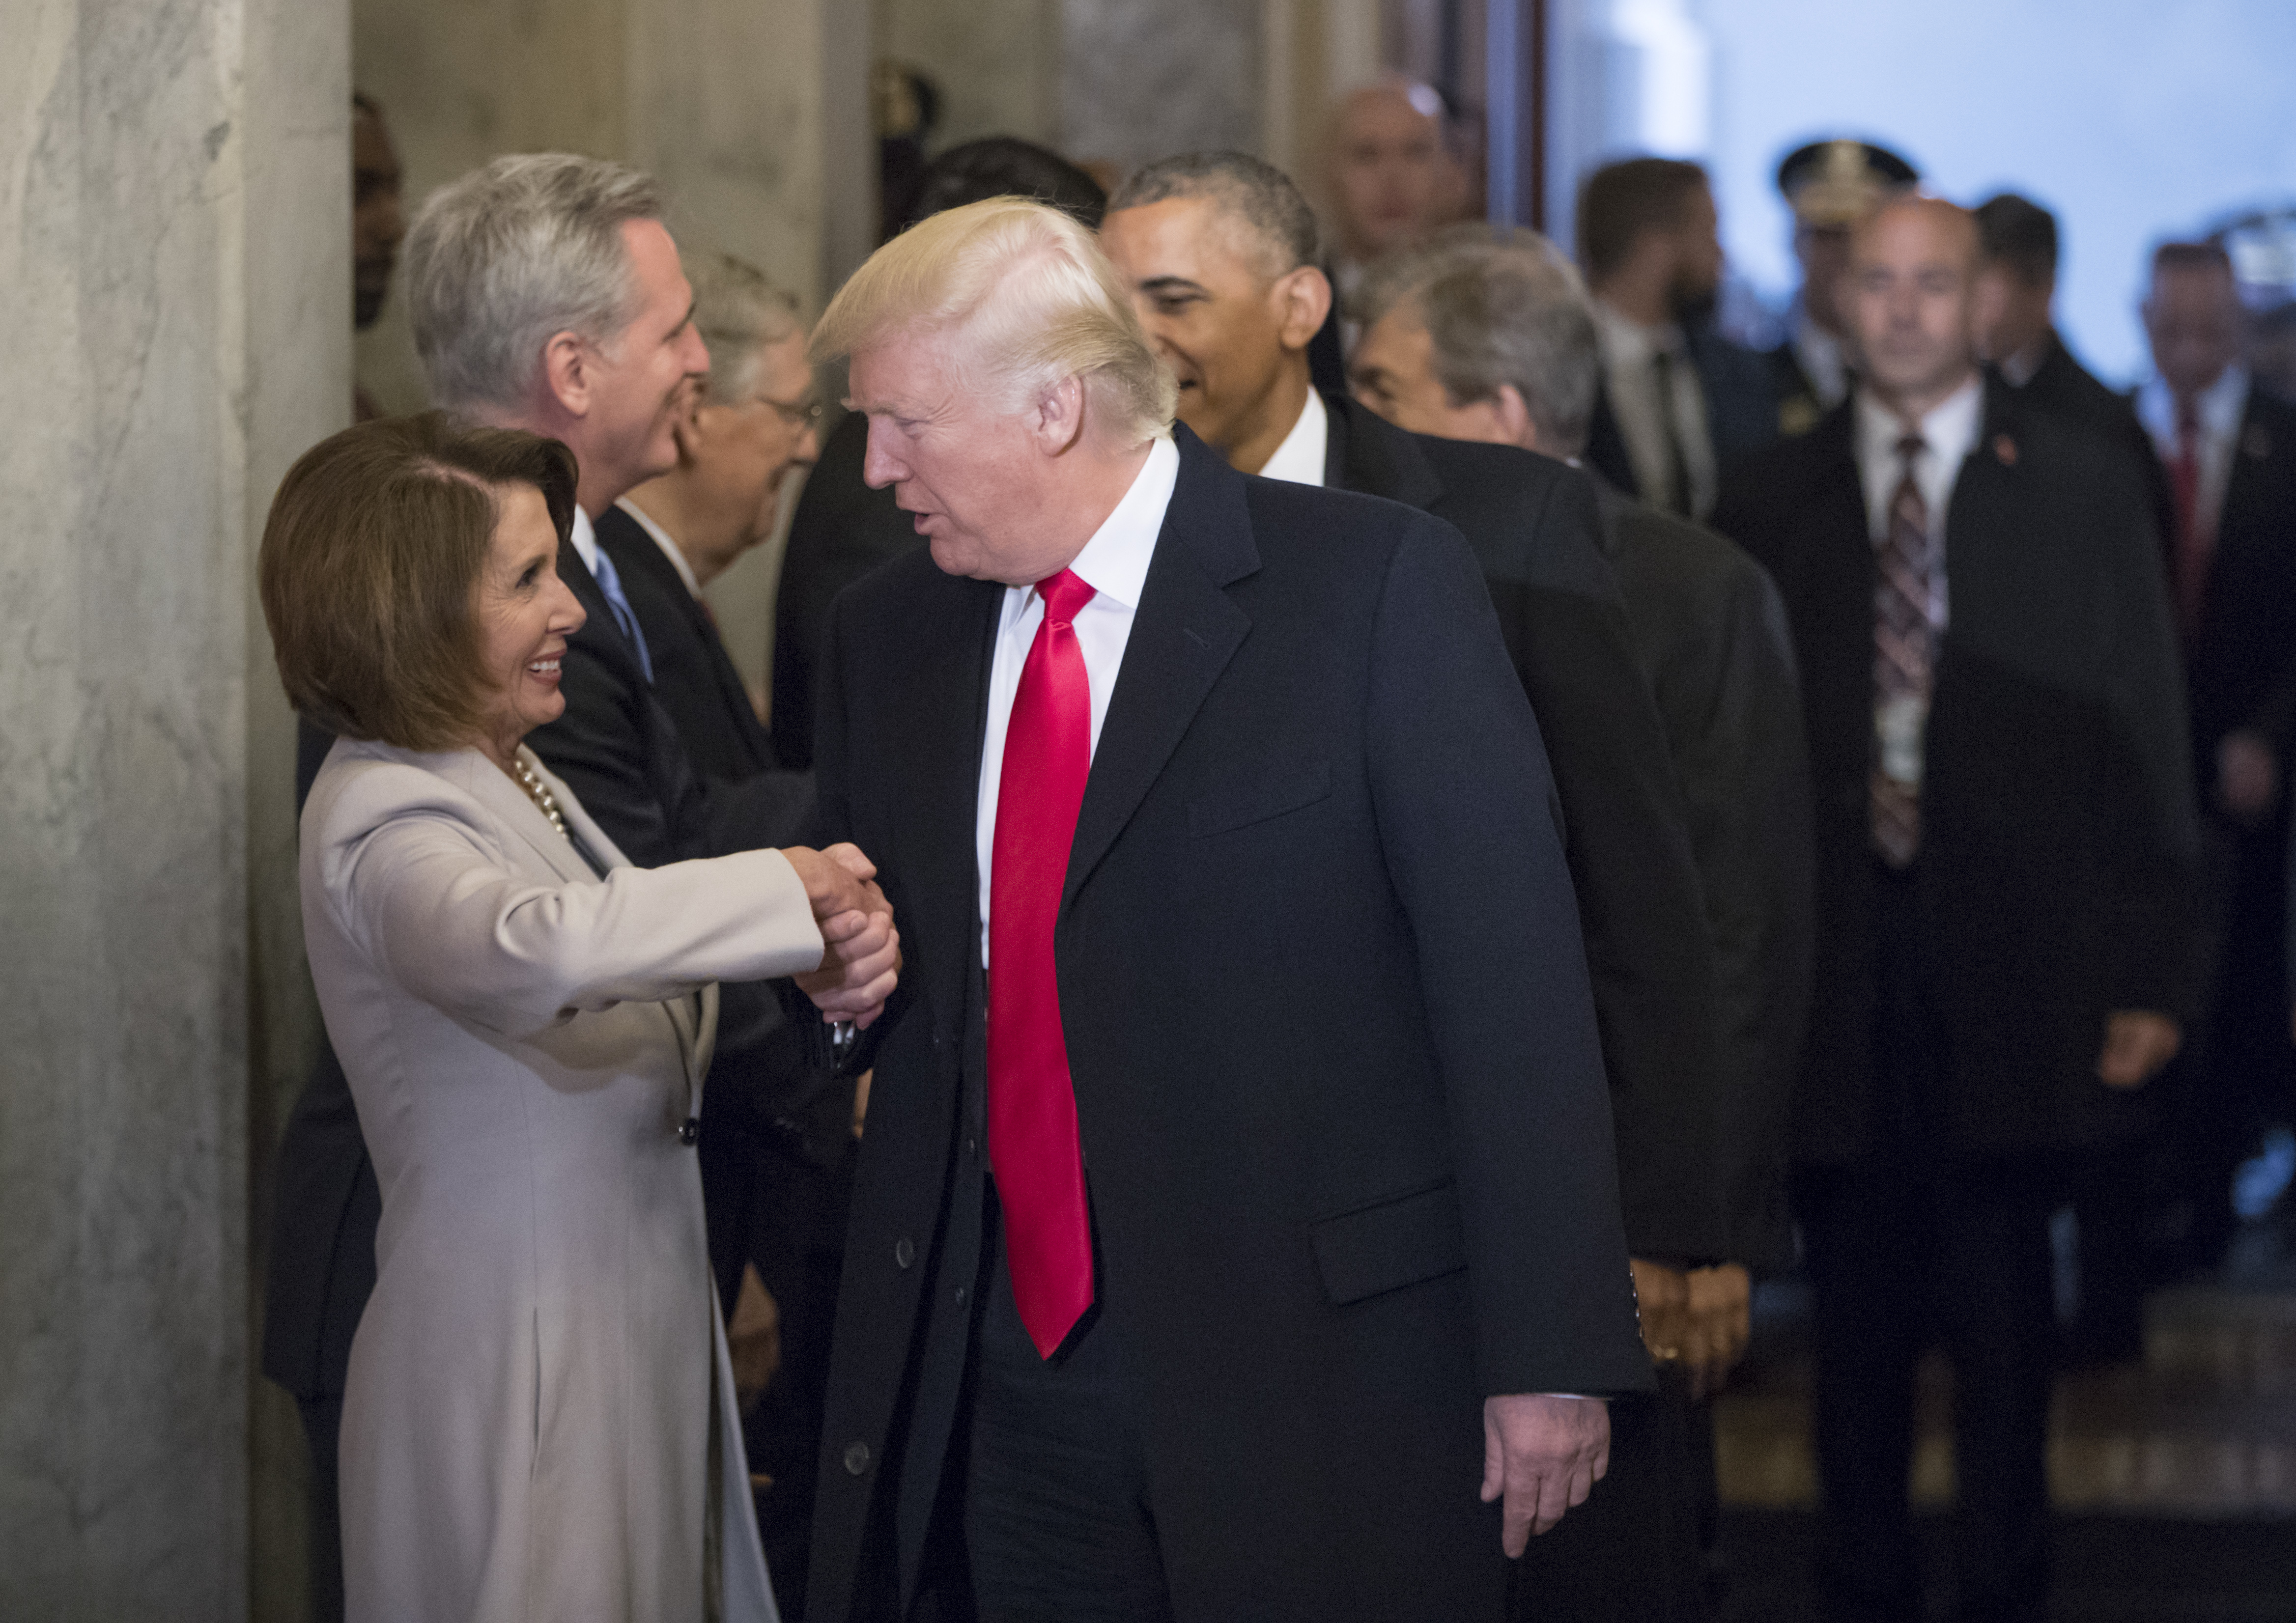 President-elect Donald Trump (C) and President Barack Obama (R) are greeted by members of the Congressional leadership including House Minority Leader Nancy Pelosi (D-CA) as they arrive for Trump's inauguration ceremony at the Capitol on January 20, 2017 in Washington, DC. (Photo by J. Scott Applewhite - Pool/Getty Images)